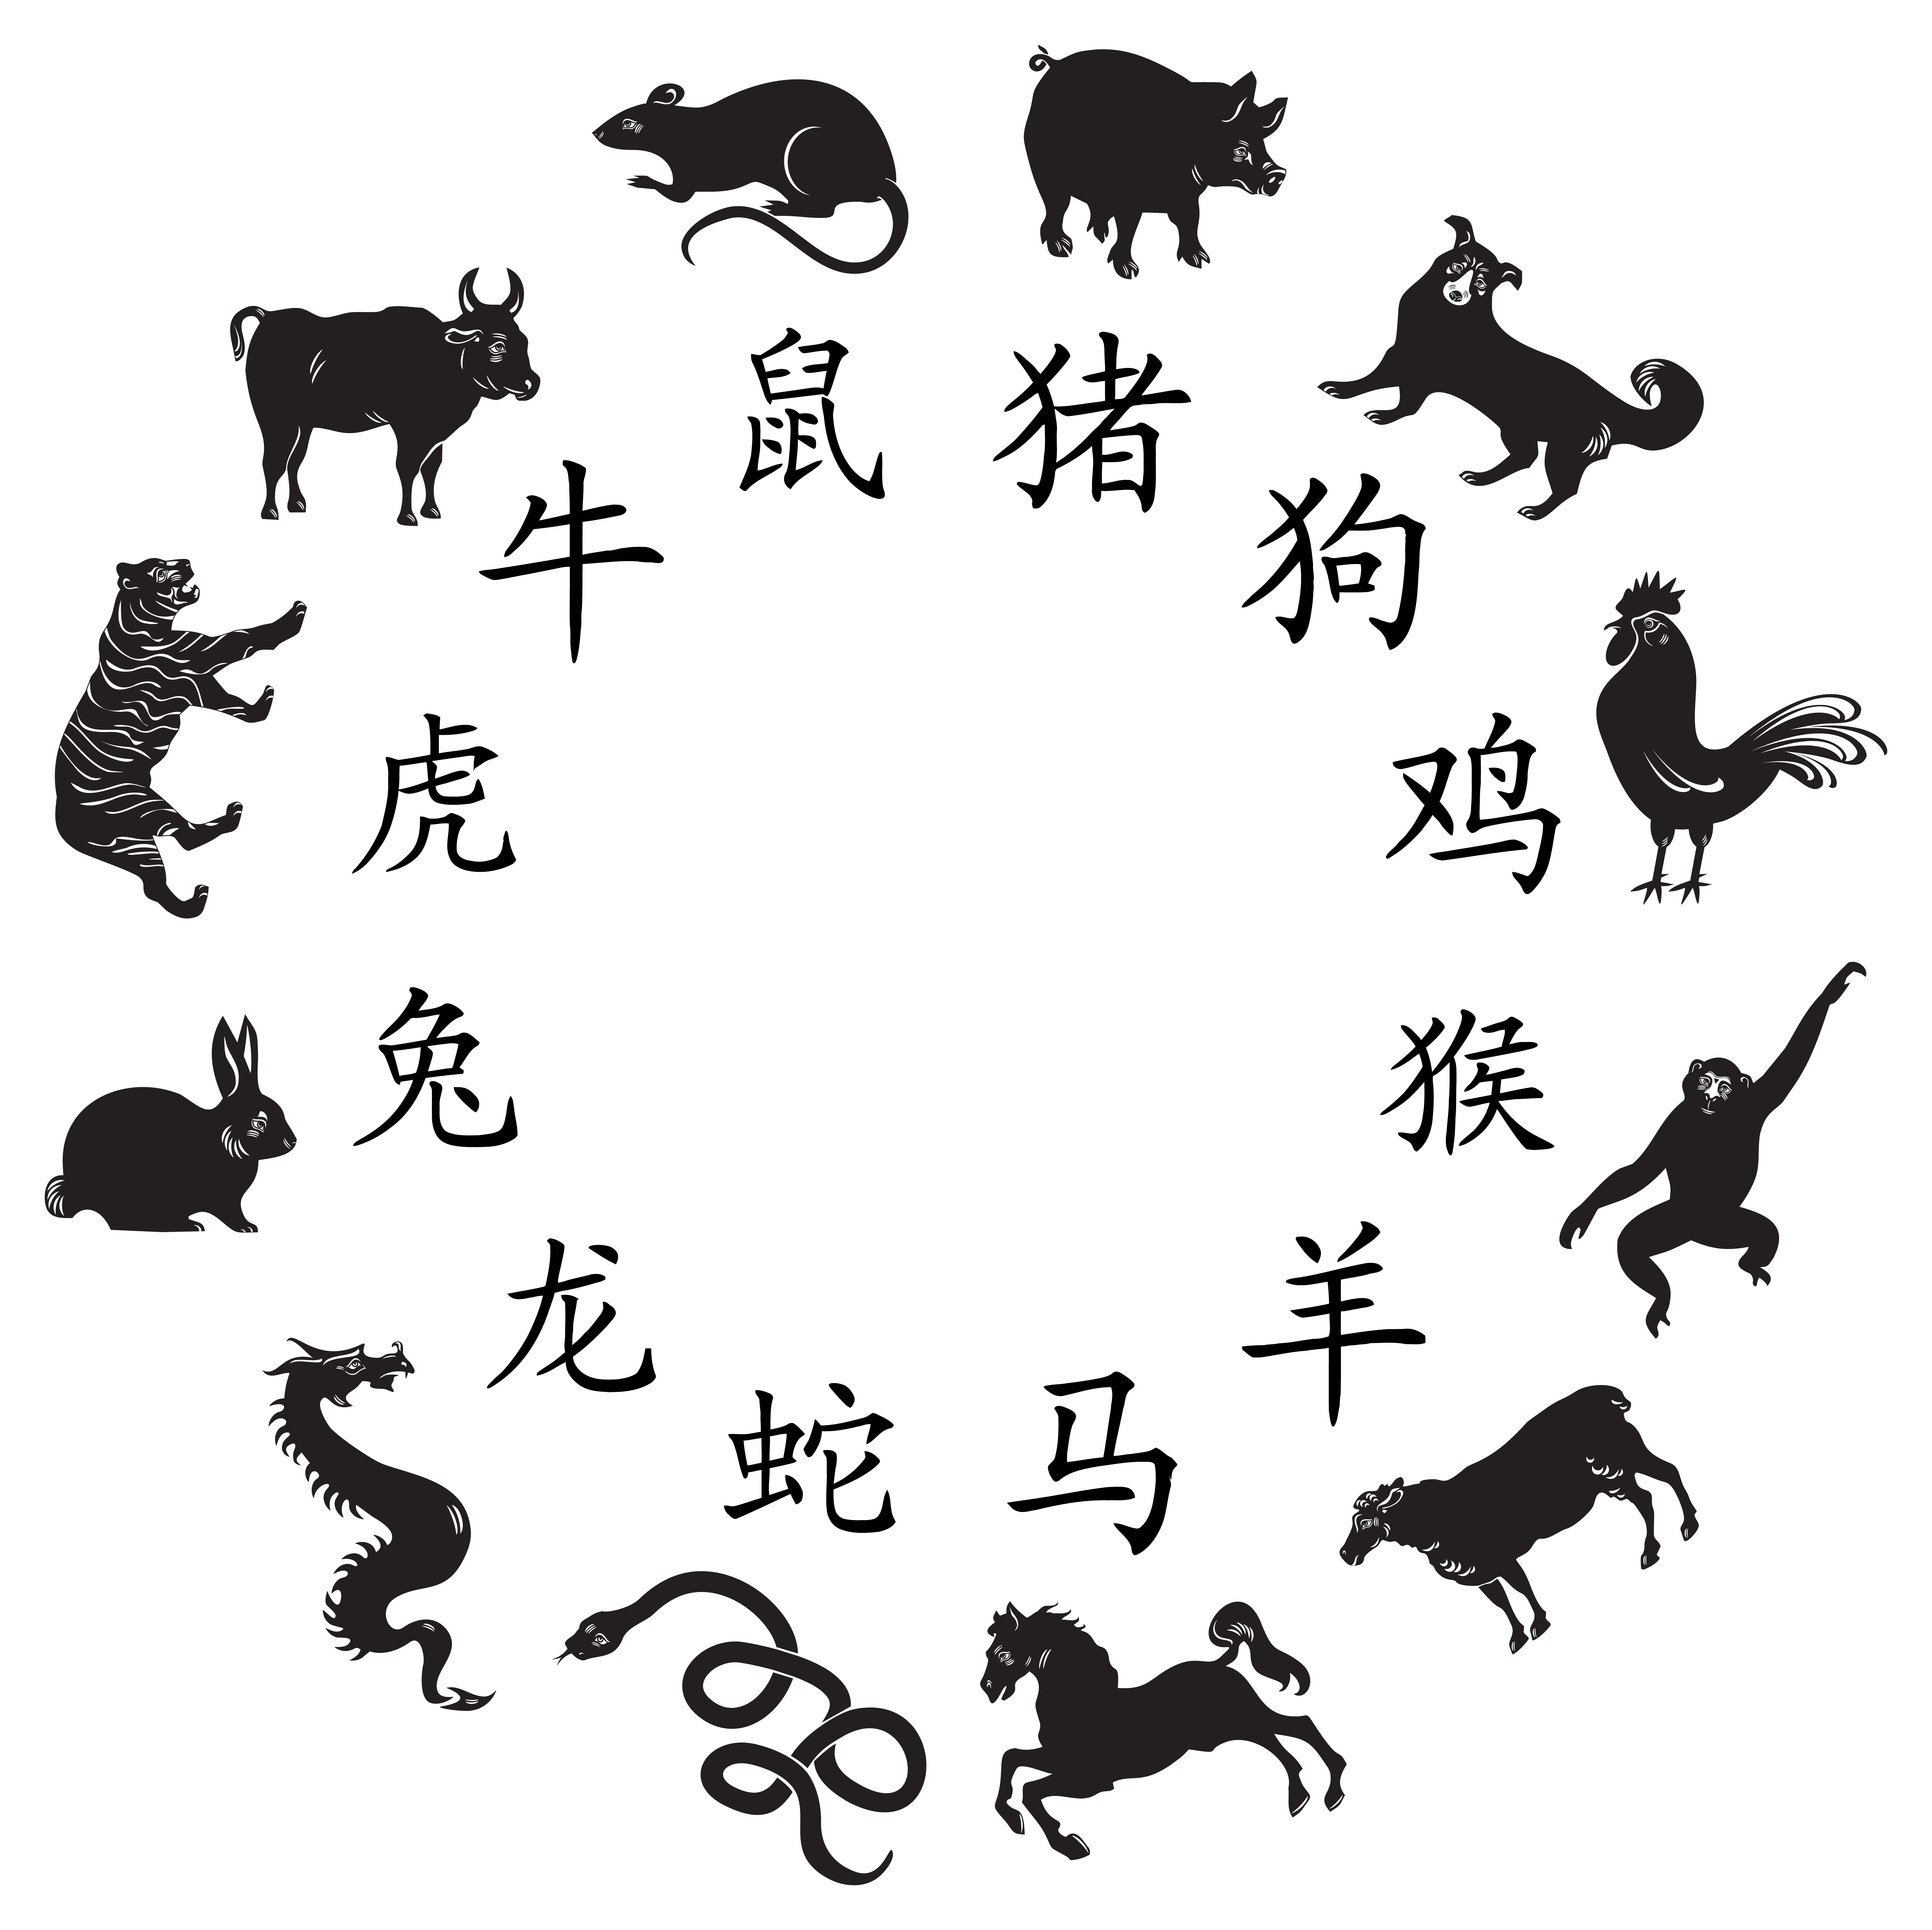 clipart stock Chinese clipart. Transparent zodiac png image.